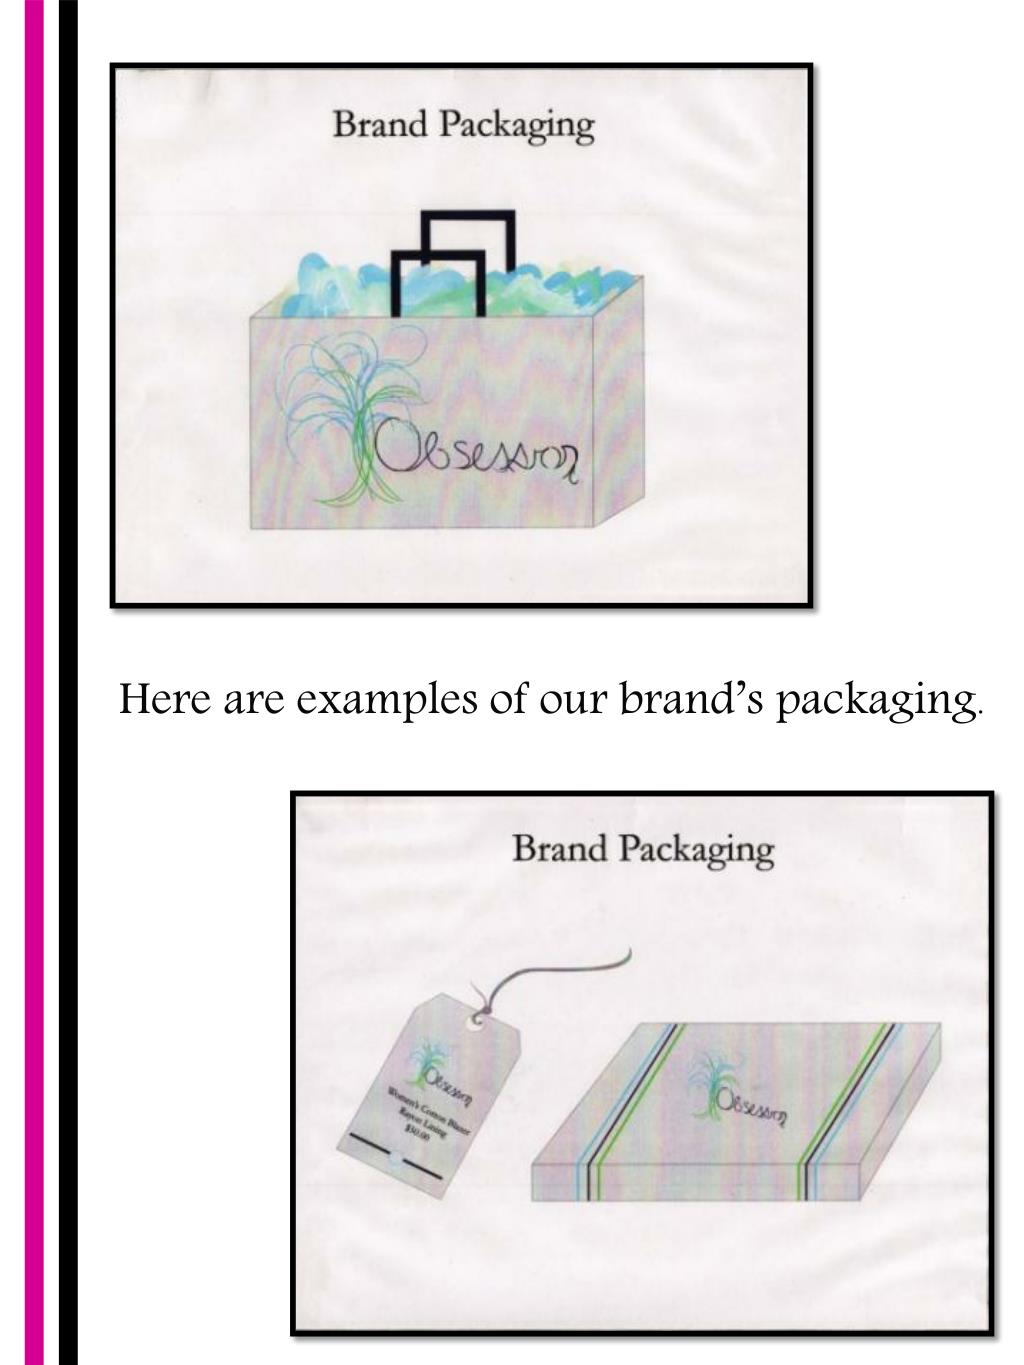 Here are examples of our brand's packaging